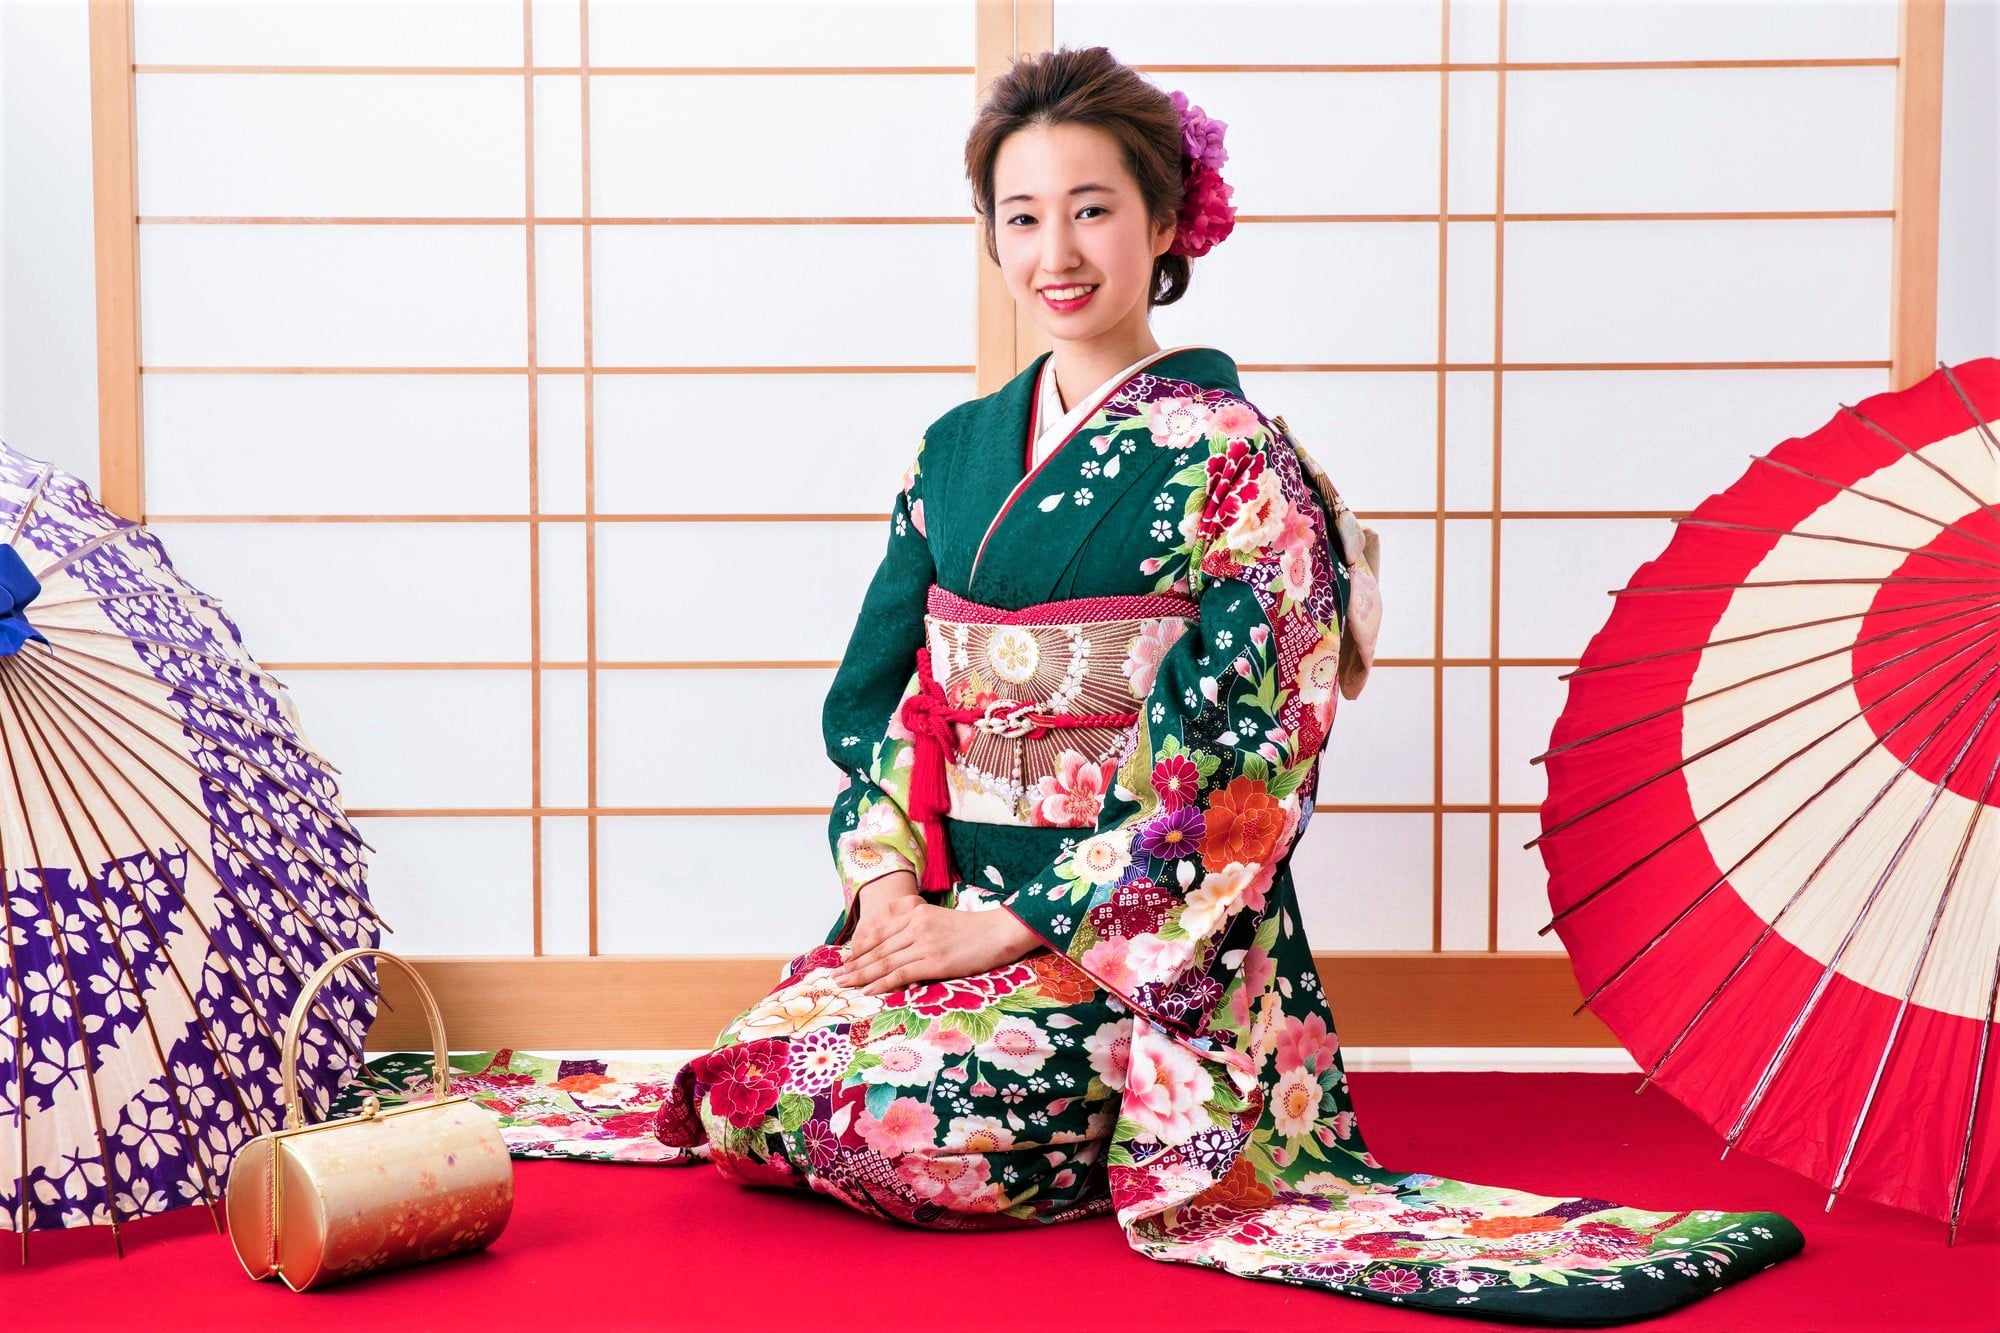 18 Customs and Traditions That Represent Japanese Culture